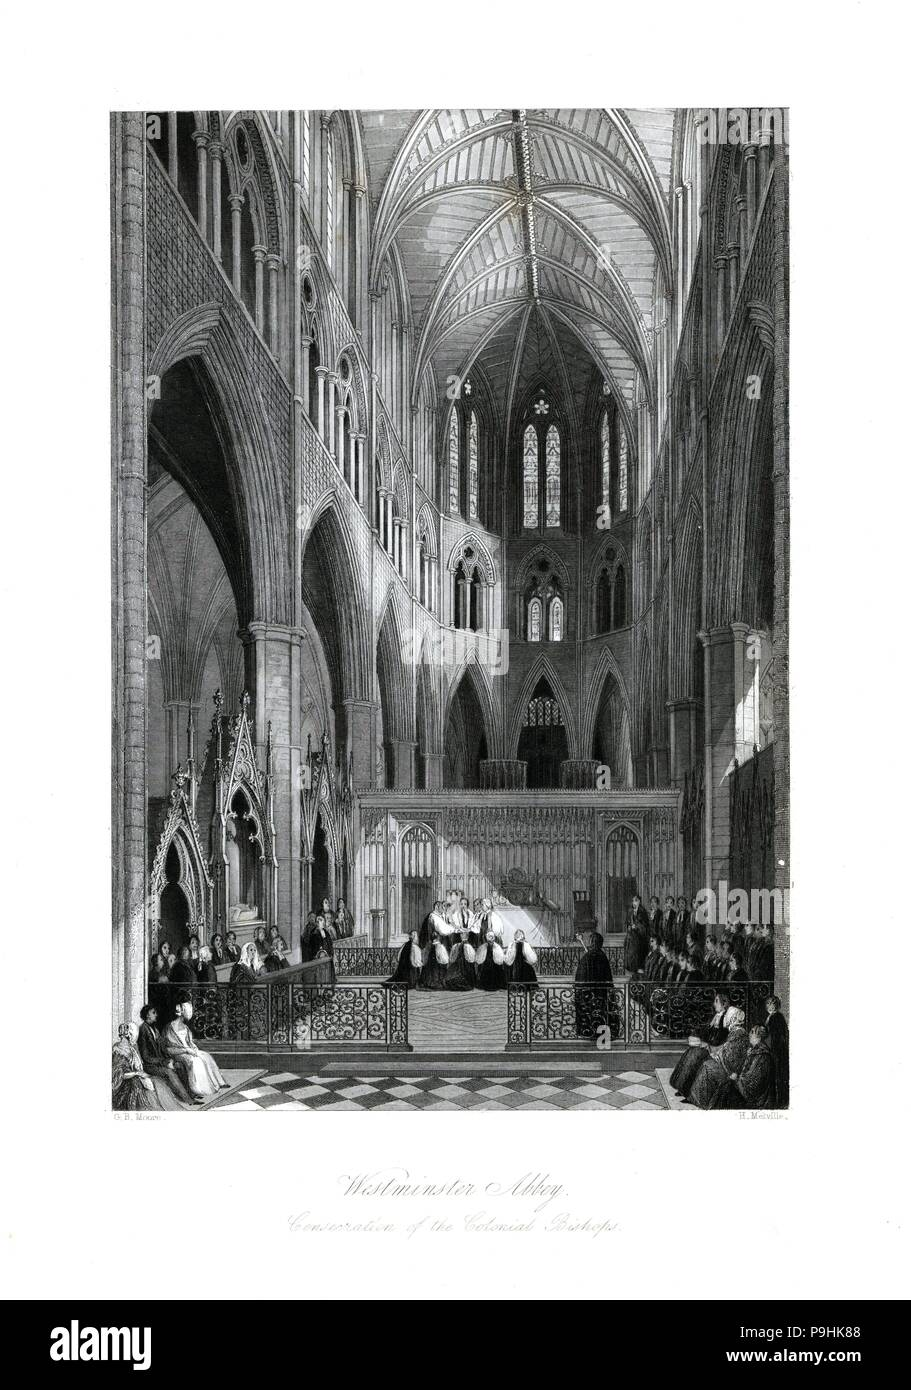 Consecration of the colonial bishops, Westminster Abbey. Steel engraving by Henry Melville after an illustration by G.B. Moore from London Interiors, Their Costumes and Ceremonies, Joshua Mead, London, 1841. - Stock Image